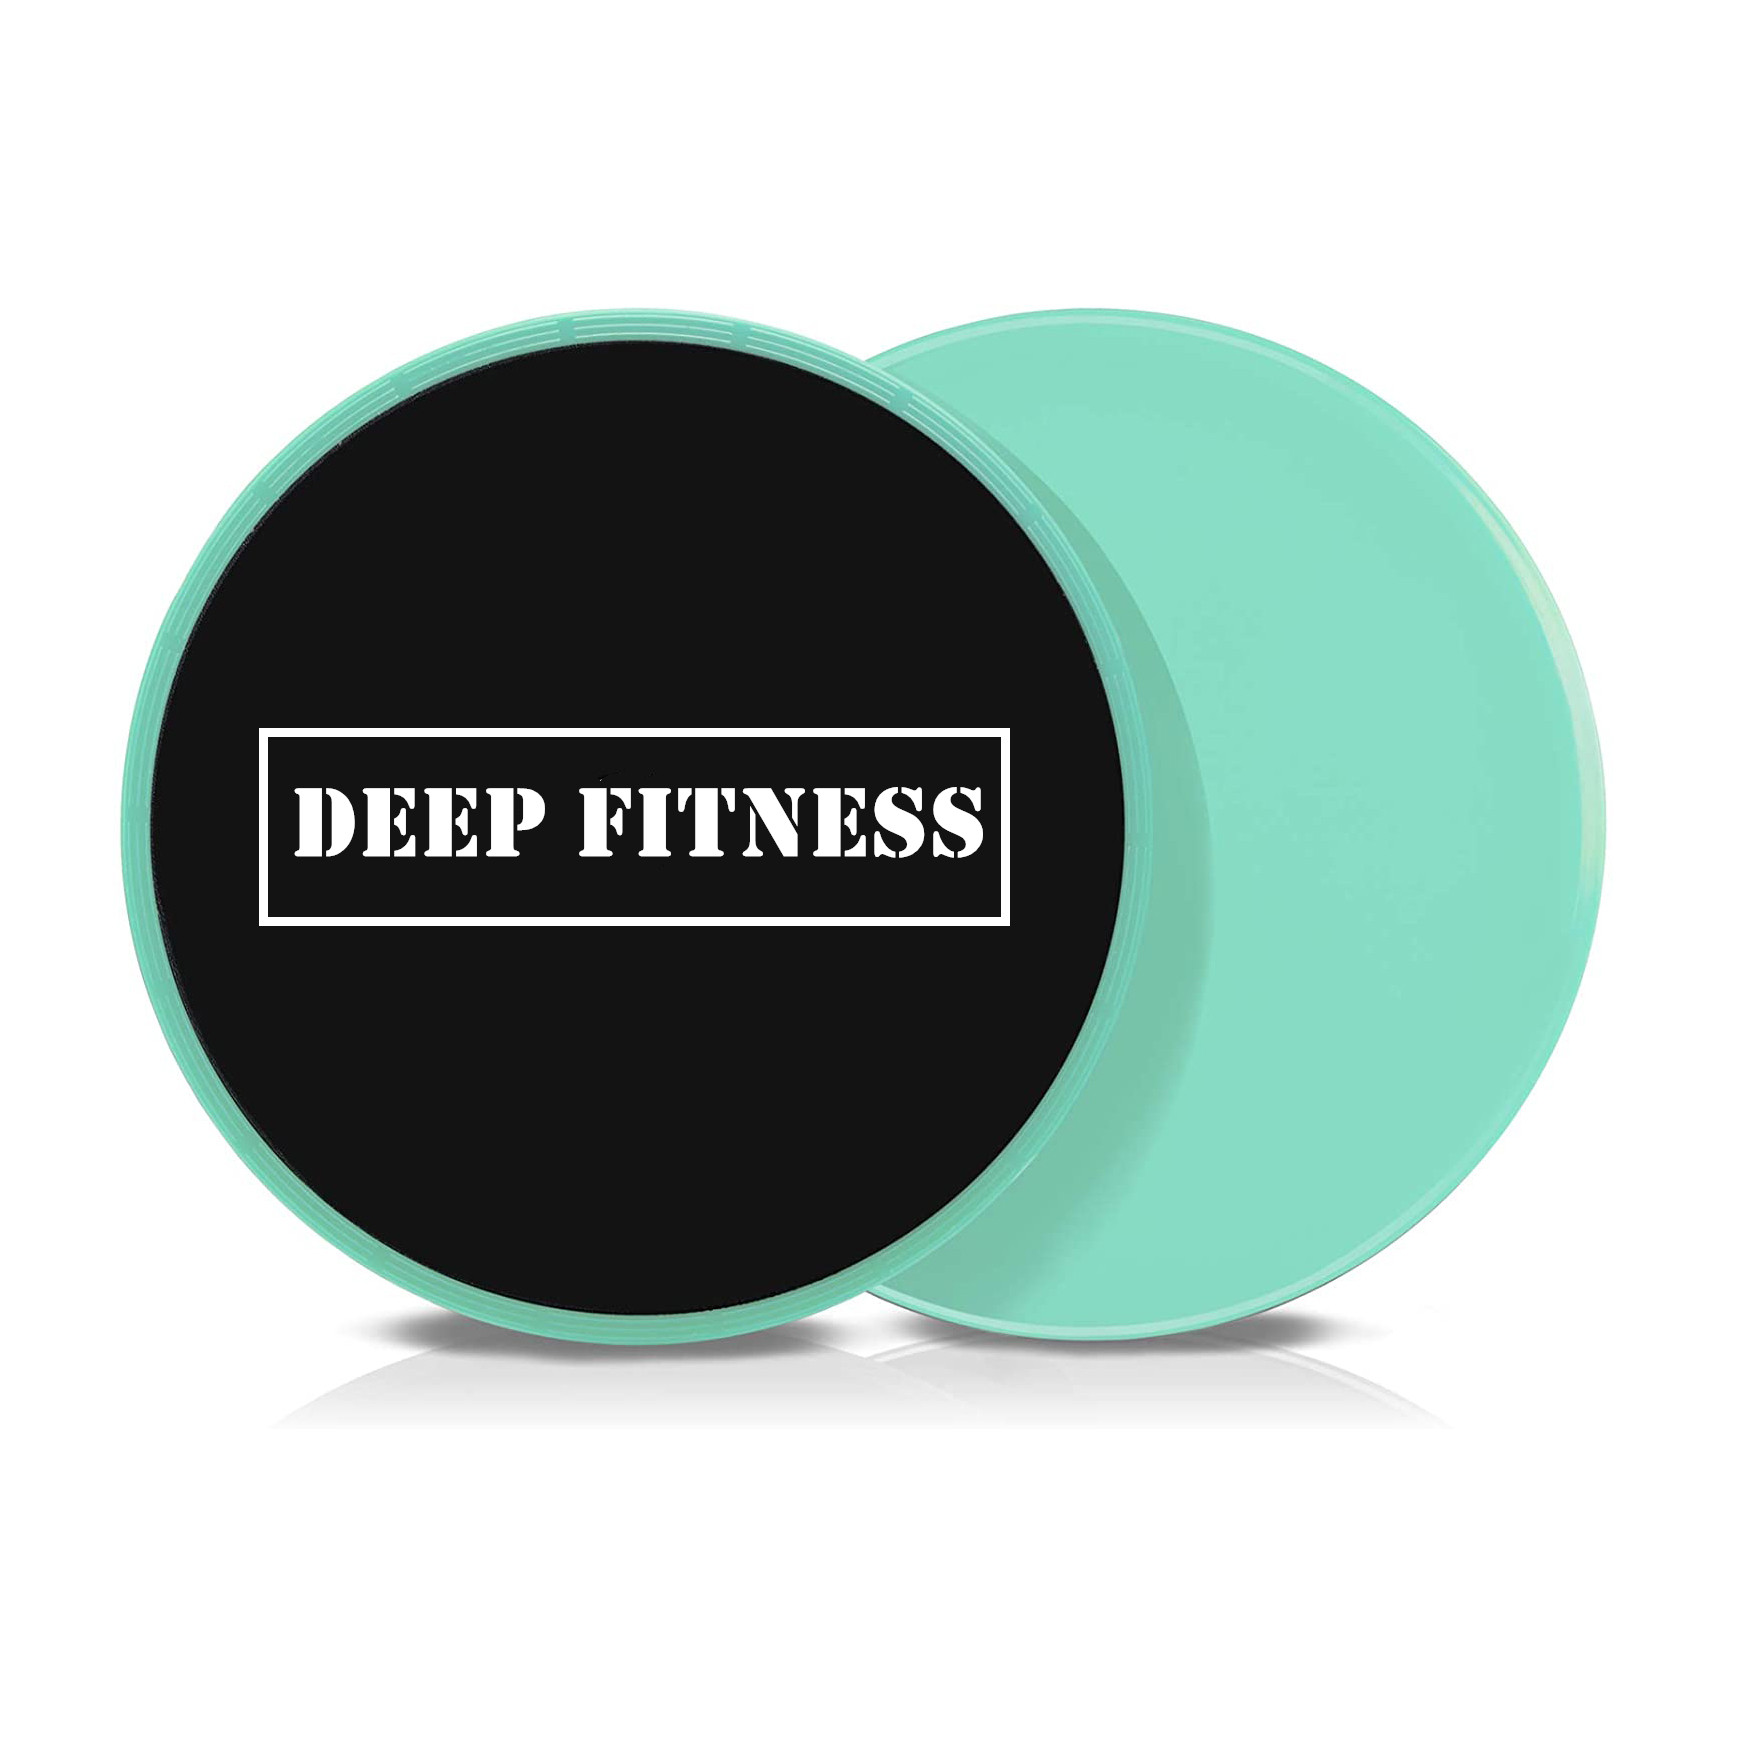 2020 Upgrade Premium Core Sliders - 2Pcs Dual Sided Fitness Sliders for Working Out   Exercise Sliders   Strength Slides   Workout Sliders   Gliders for Exercising   Beach Body Gliding Discs